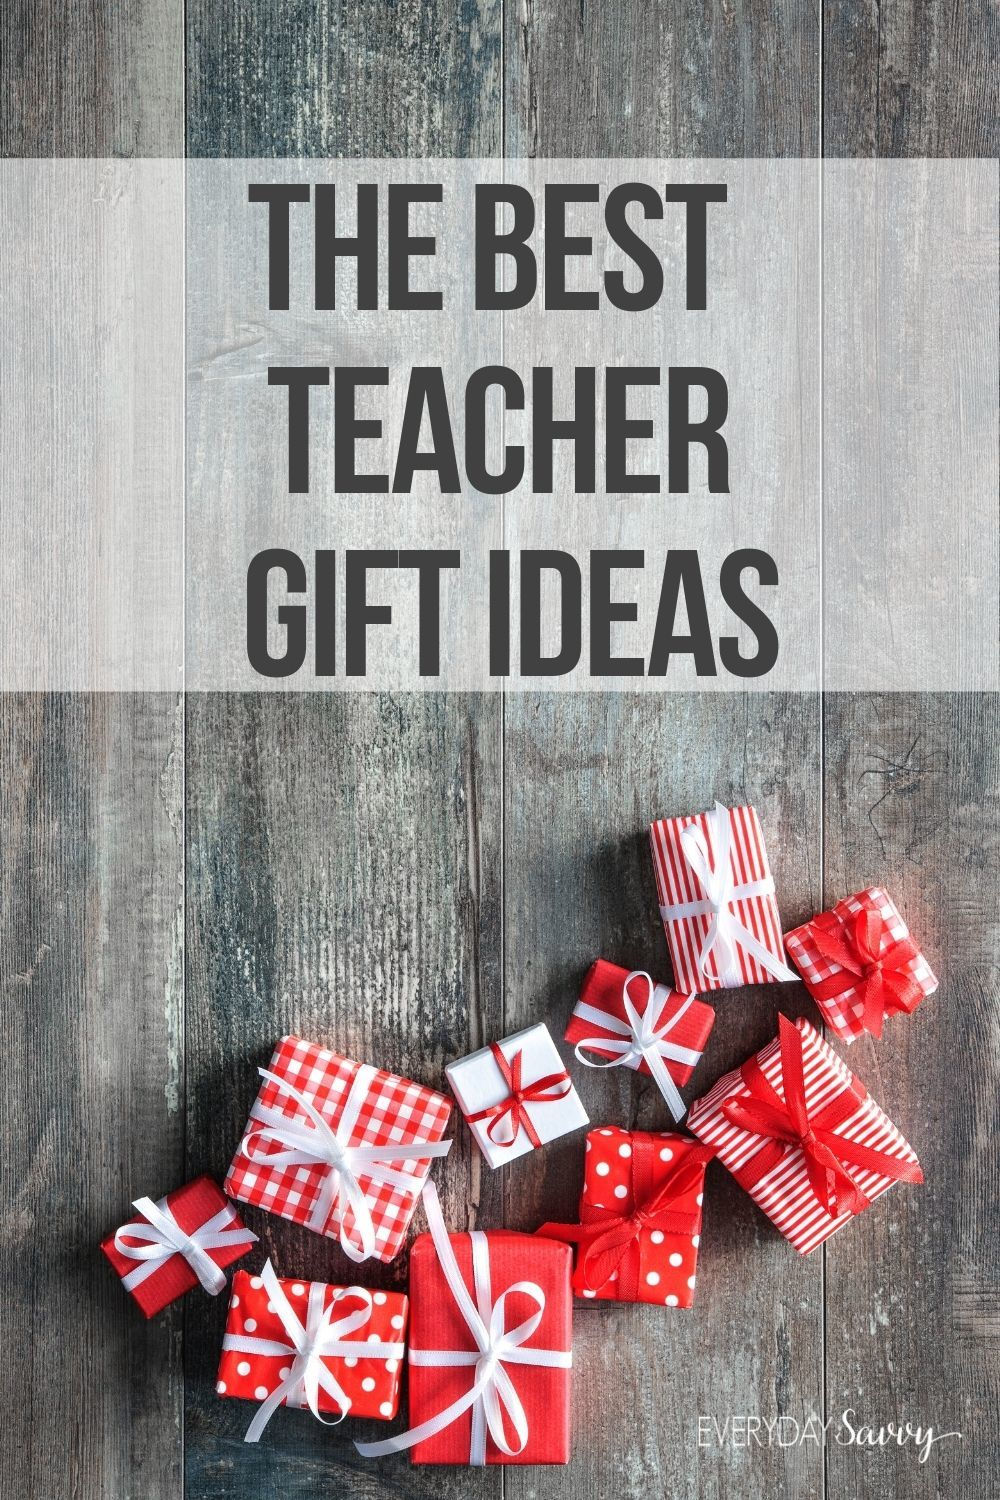 the best teacher gift ideas - red and white presents on wood